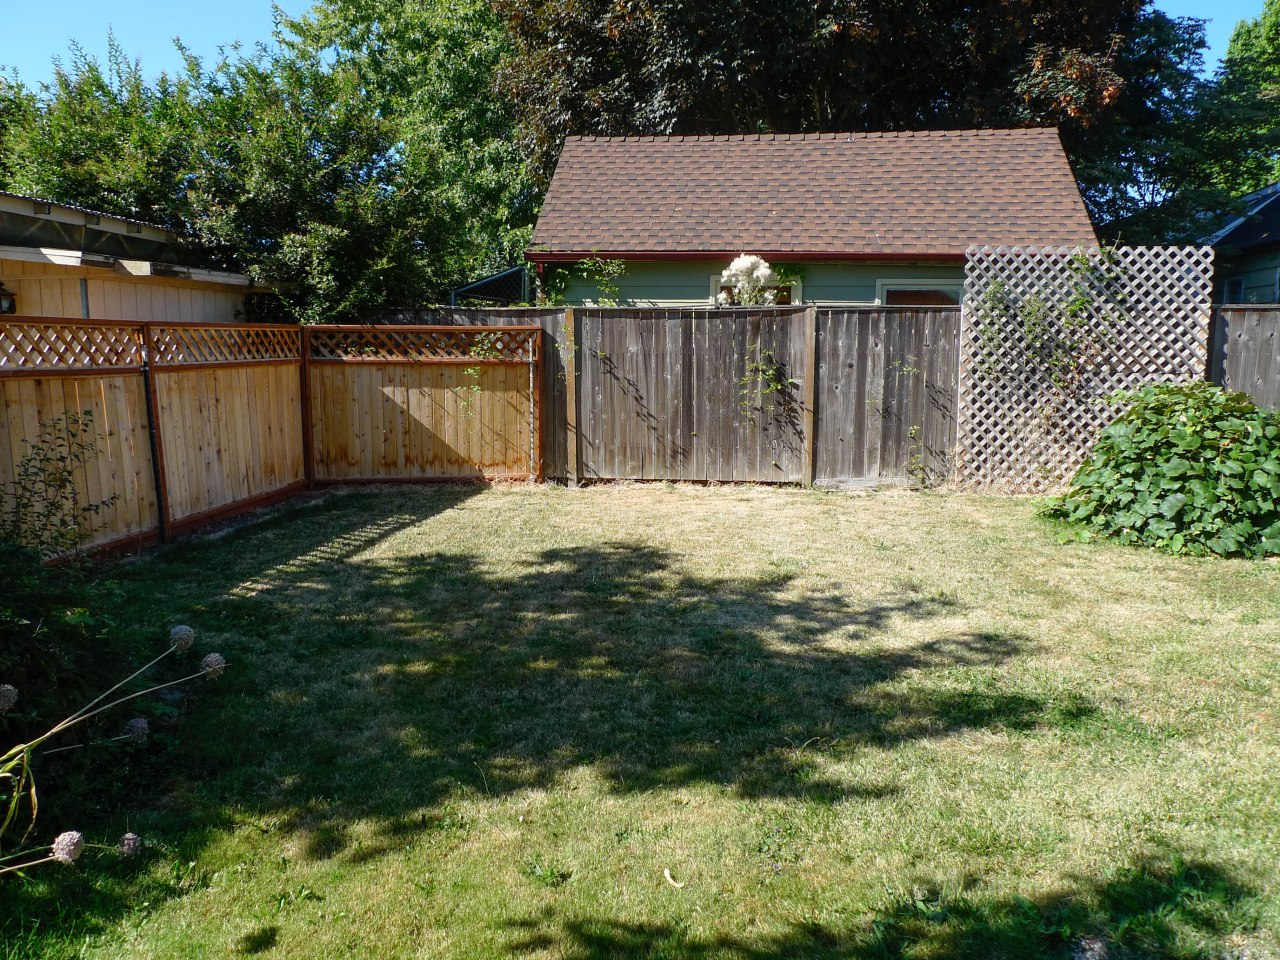 Our backyard when we moved in in August 2011